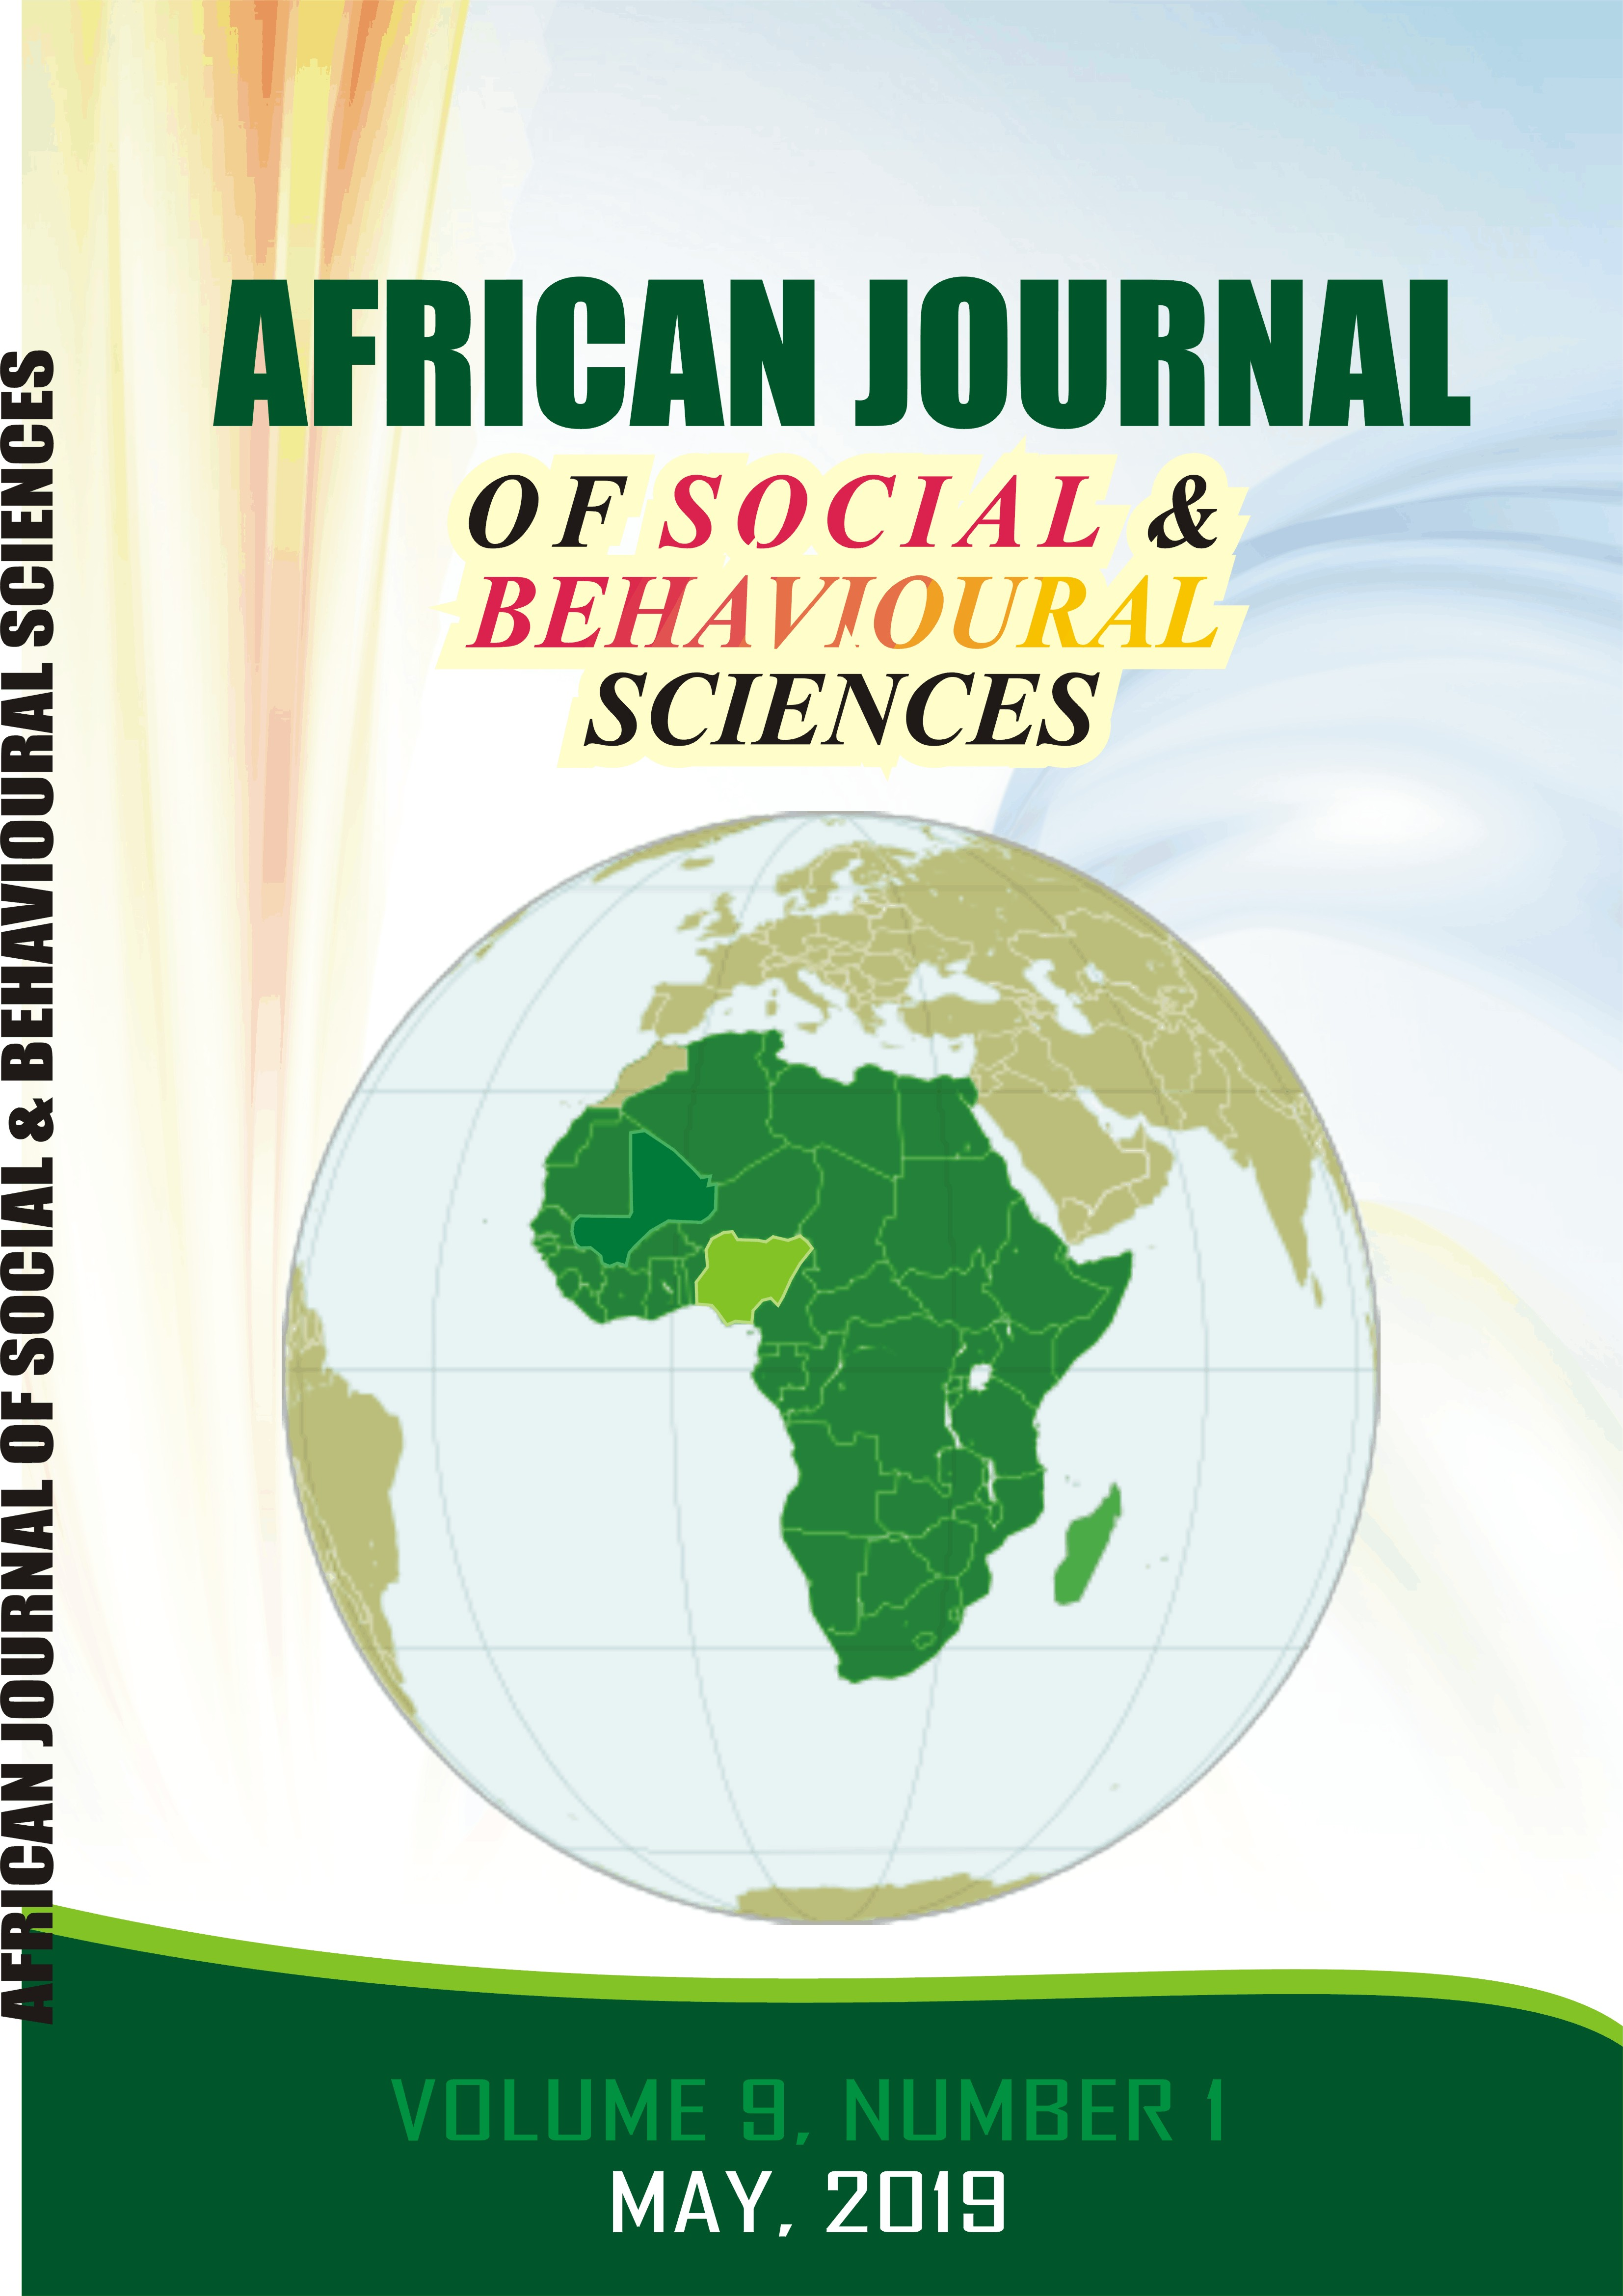 African Journal of Social & Behavioural Sciences